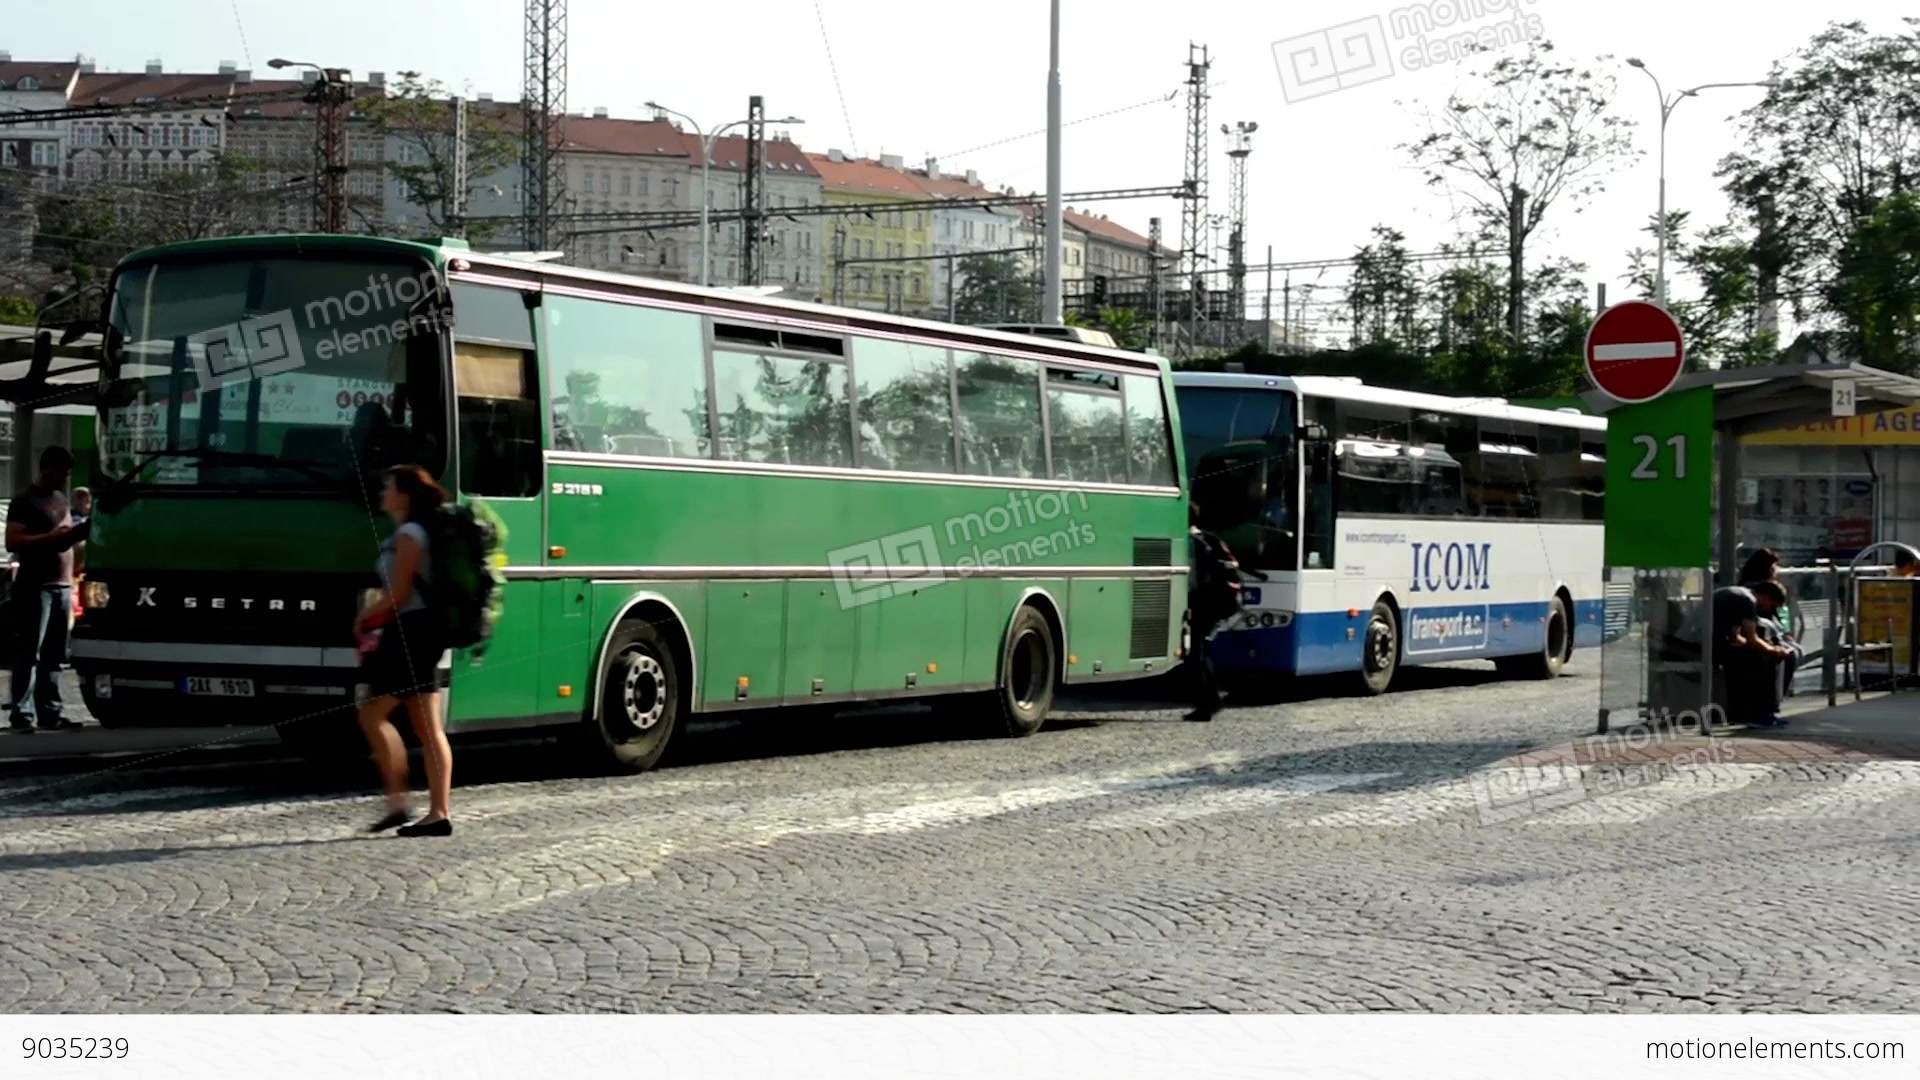 Images of Bus Stations Near Me - #rock-cafe